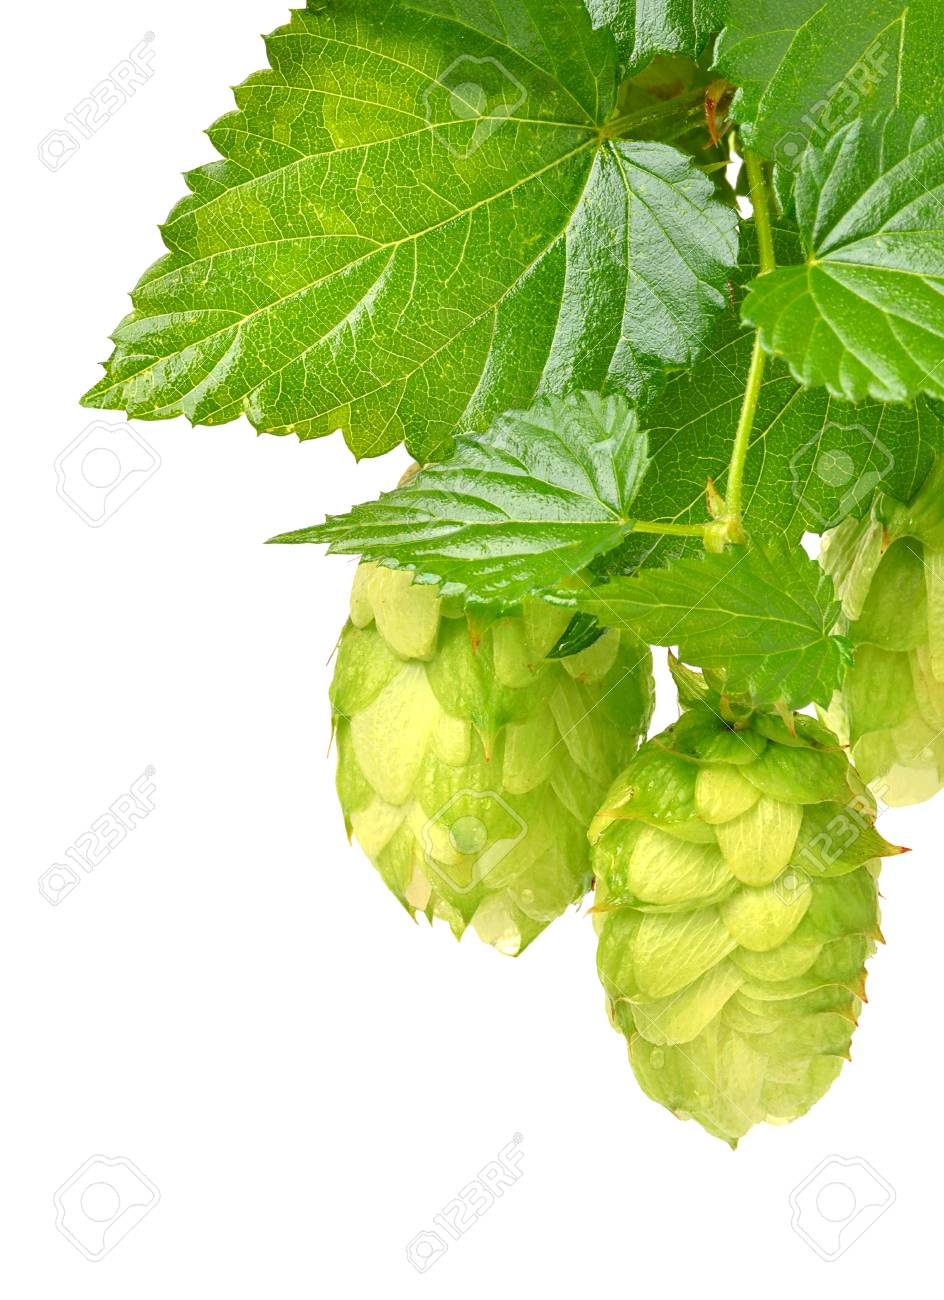 hop isolated on a white background - 72039205